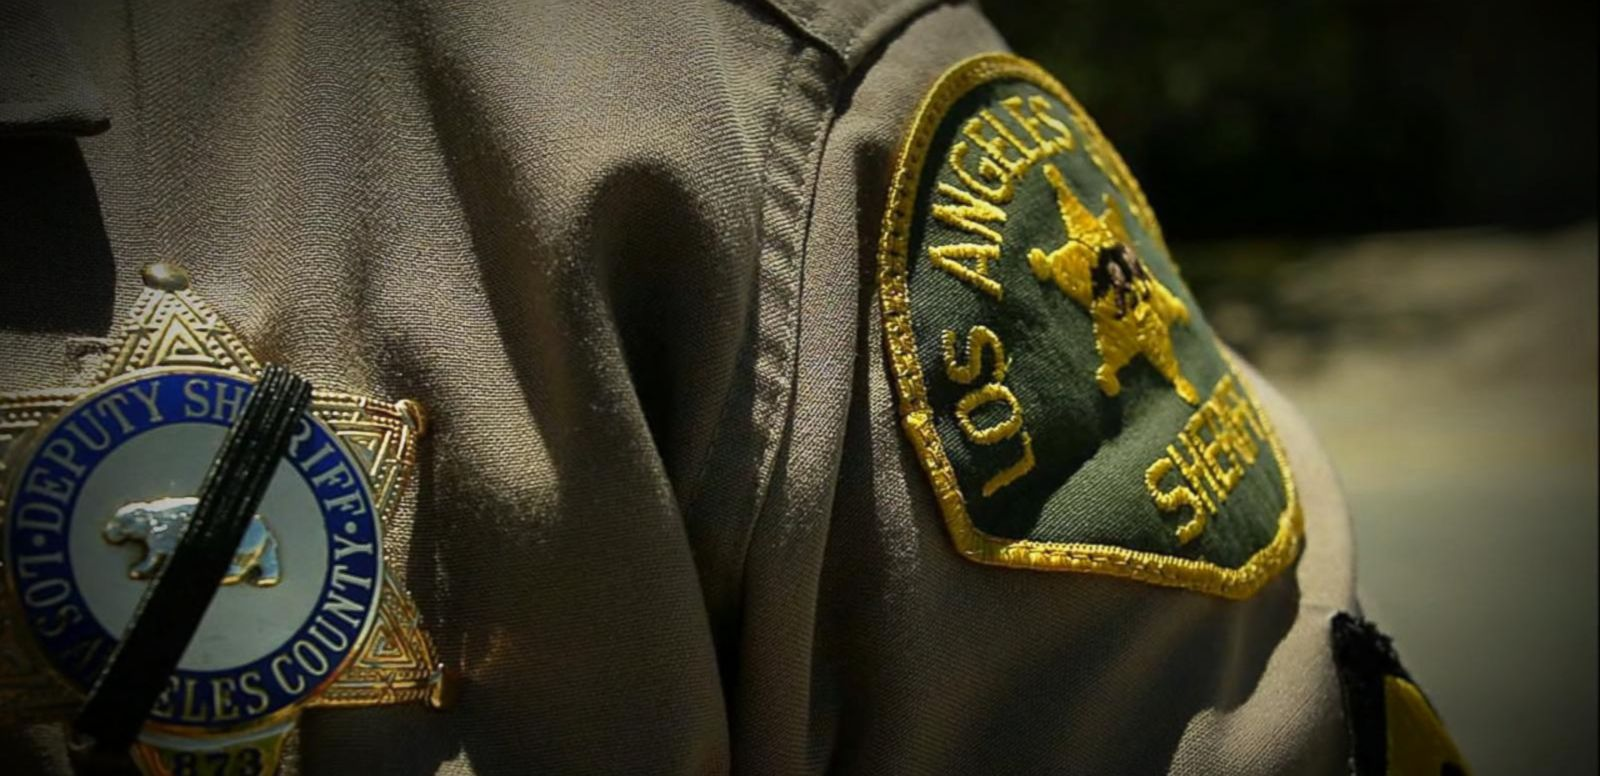 VIDEO: Los Angeles Sheriff's Department Chief-of-Staff Resigns After Racist Emails Leaked